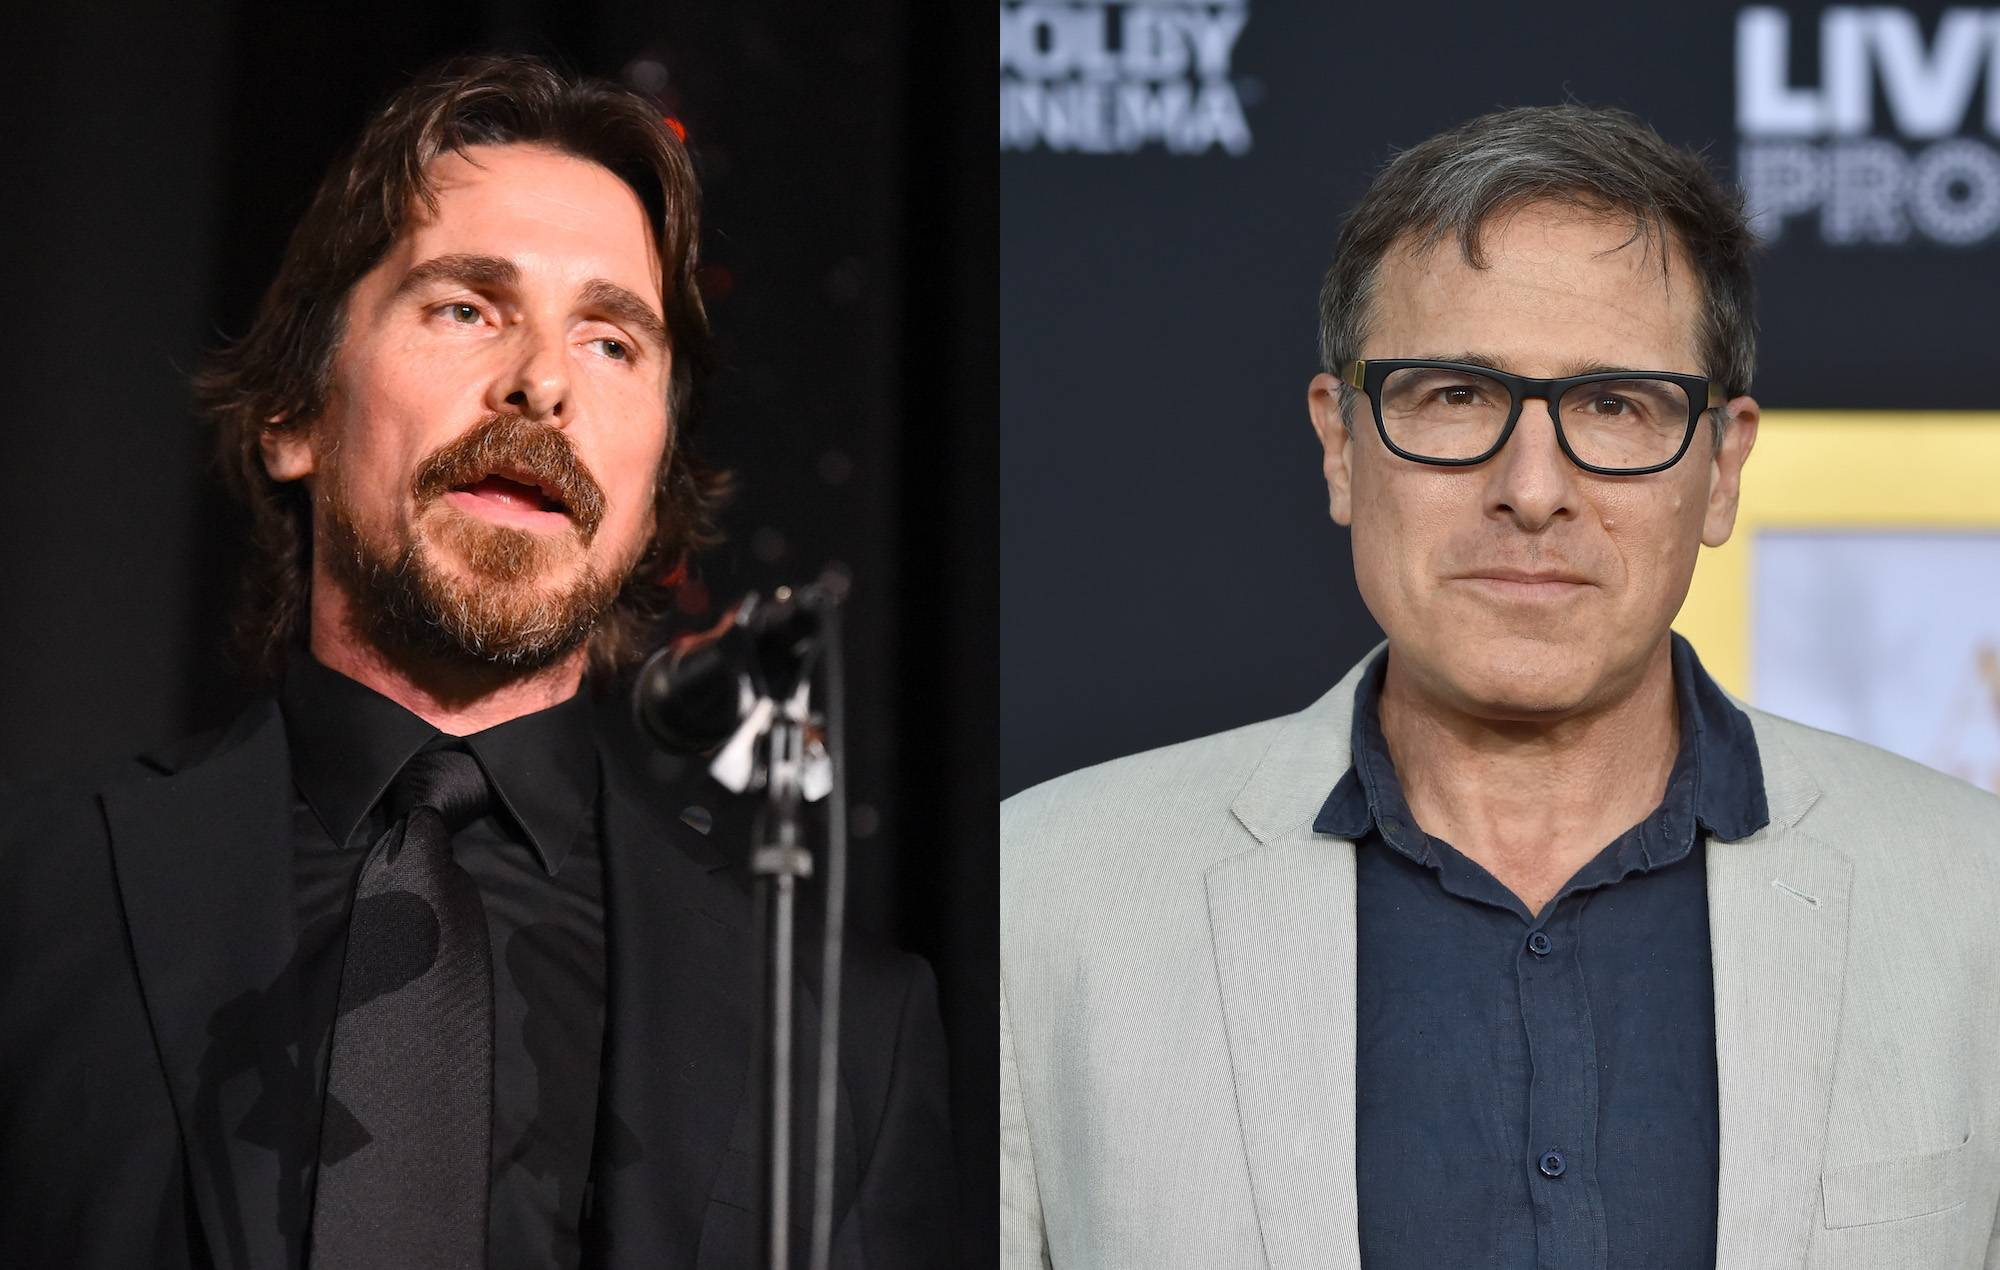 Christian Bale to team up with David O. Russell again in new film